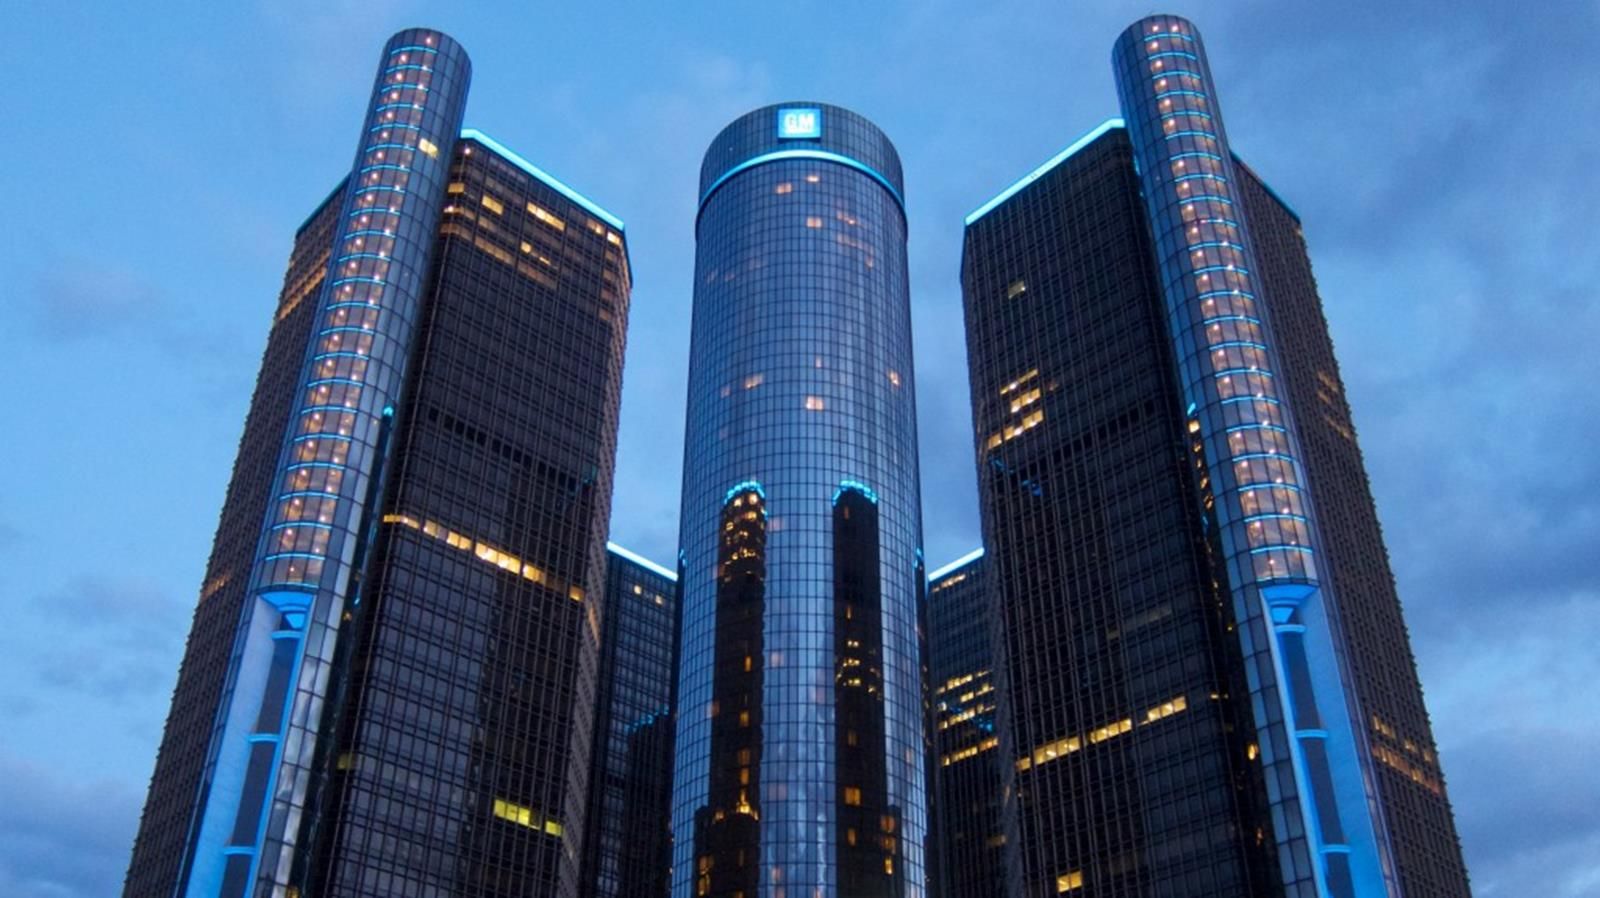 General Motors Renaissance Center